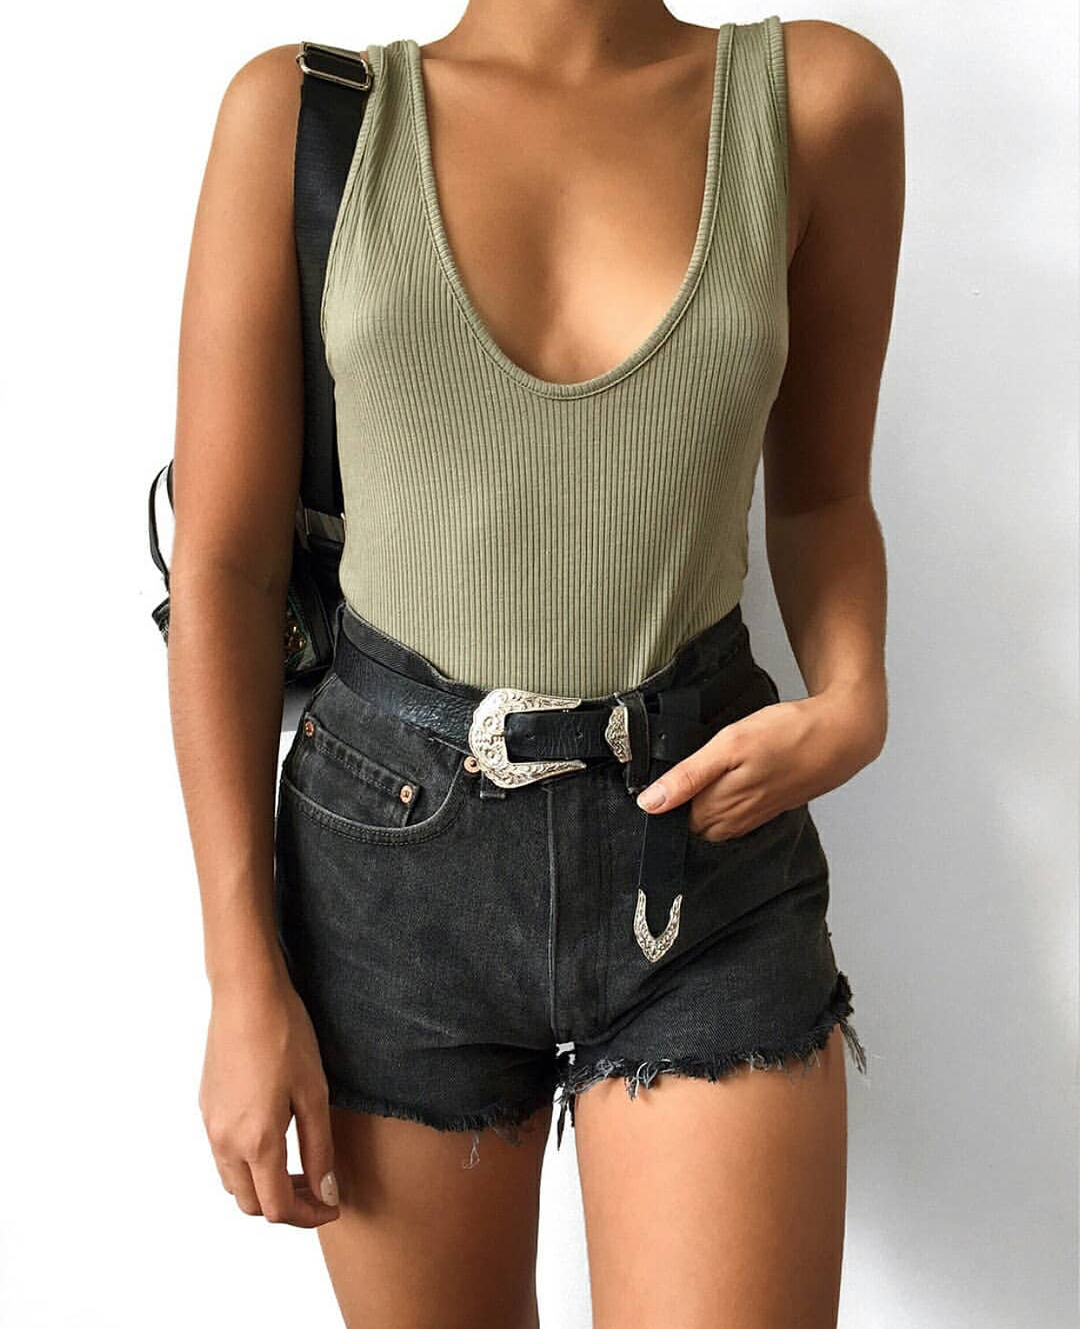 Khaki Green Bodysuit And Black Denim Shorts For Summer 2021